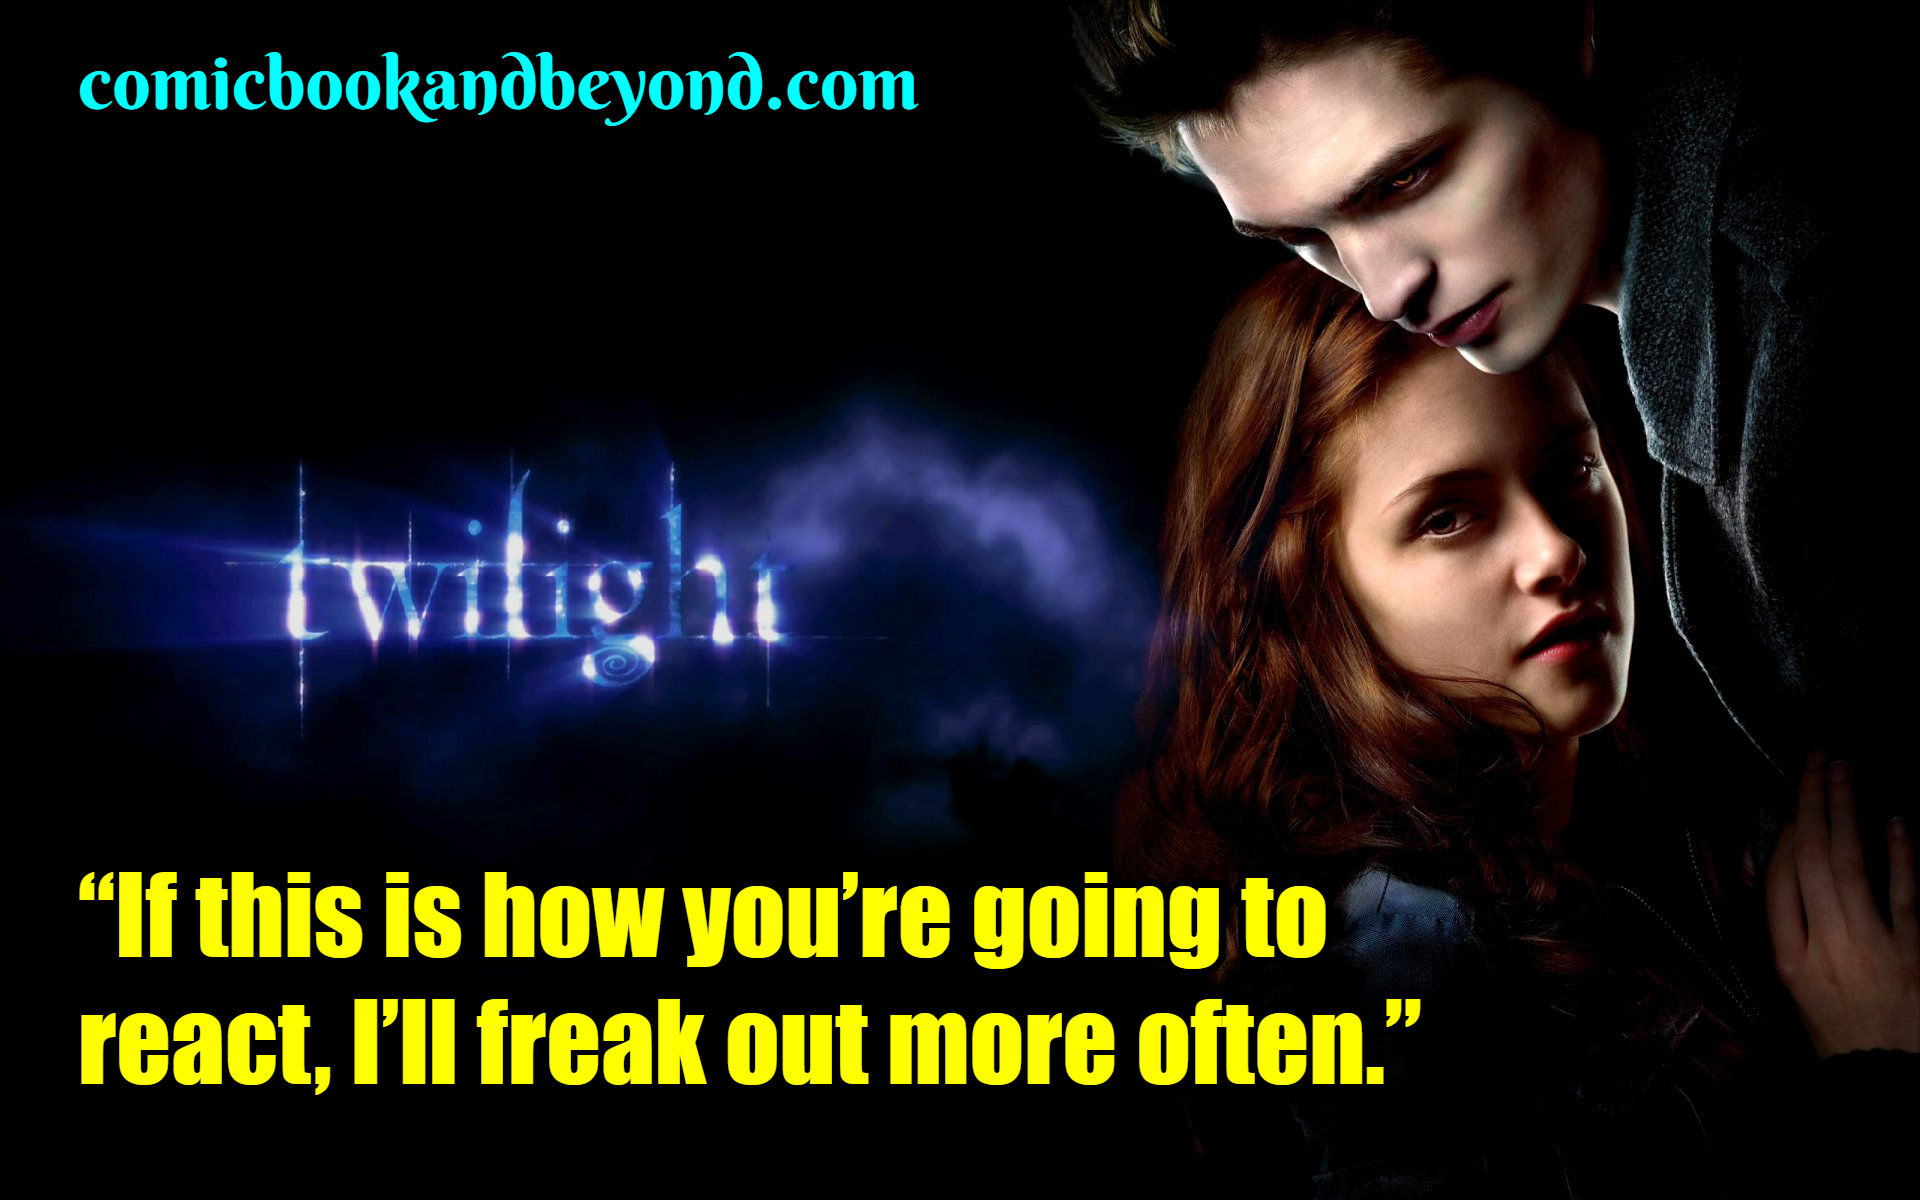 Twilight famous Quotes (2)